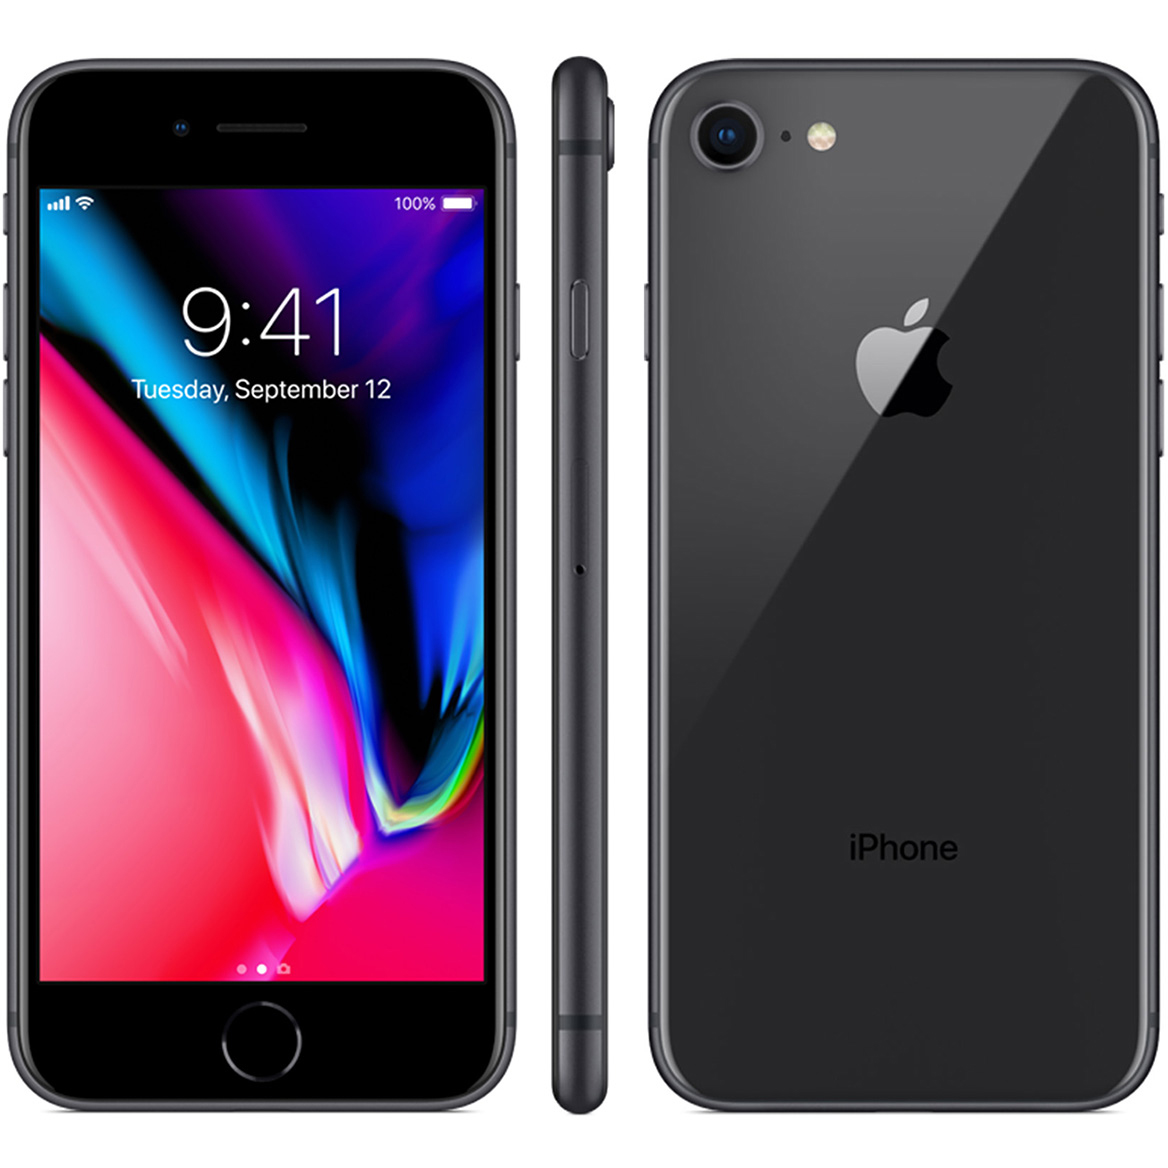 apple iphone 8 256gb space gray handys apple iphone 8. Black Bedroom Furniture Sets. Home Design Ideas